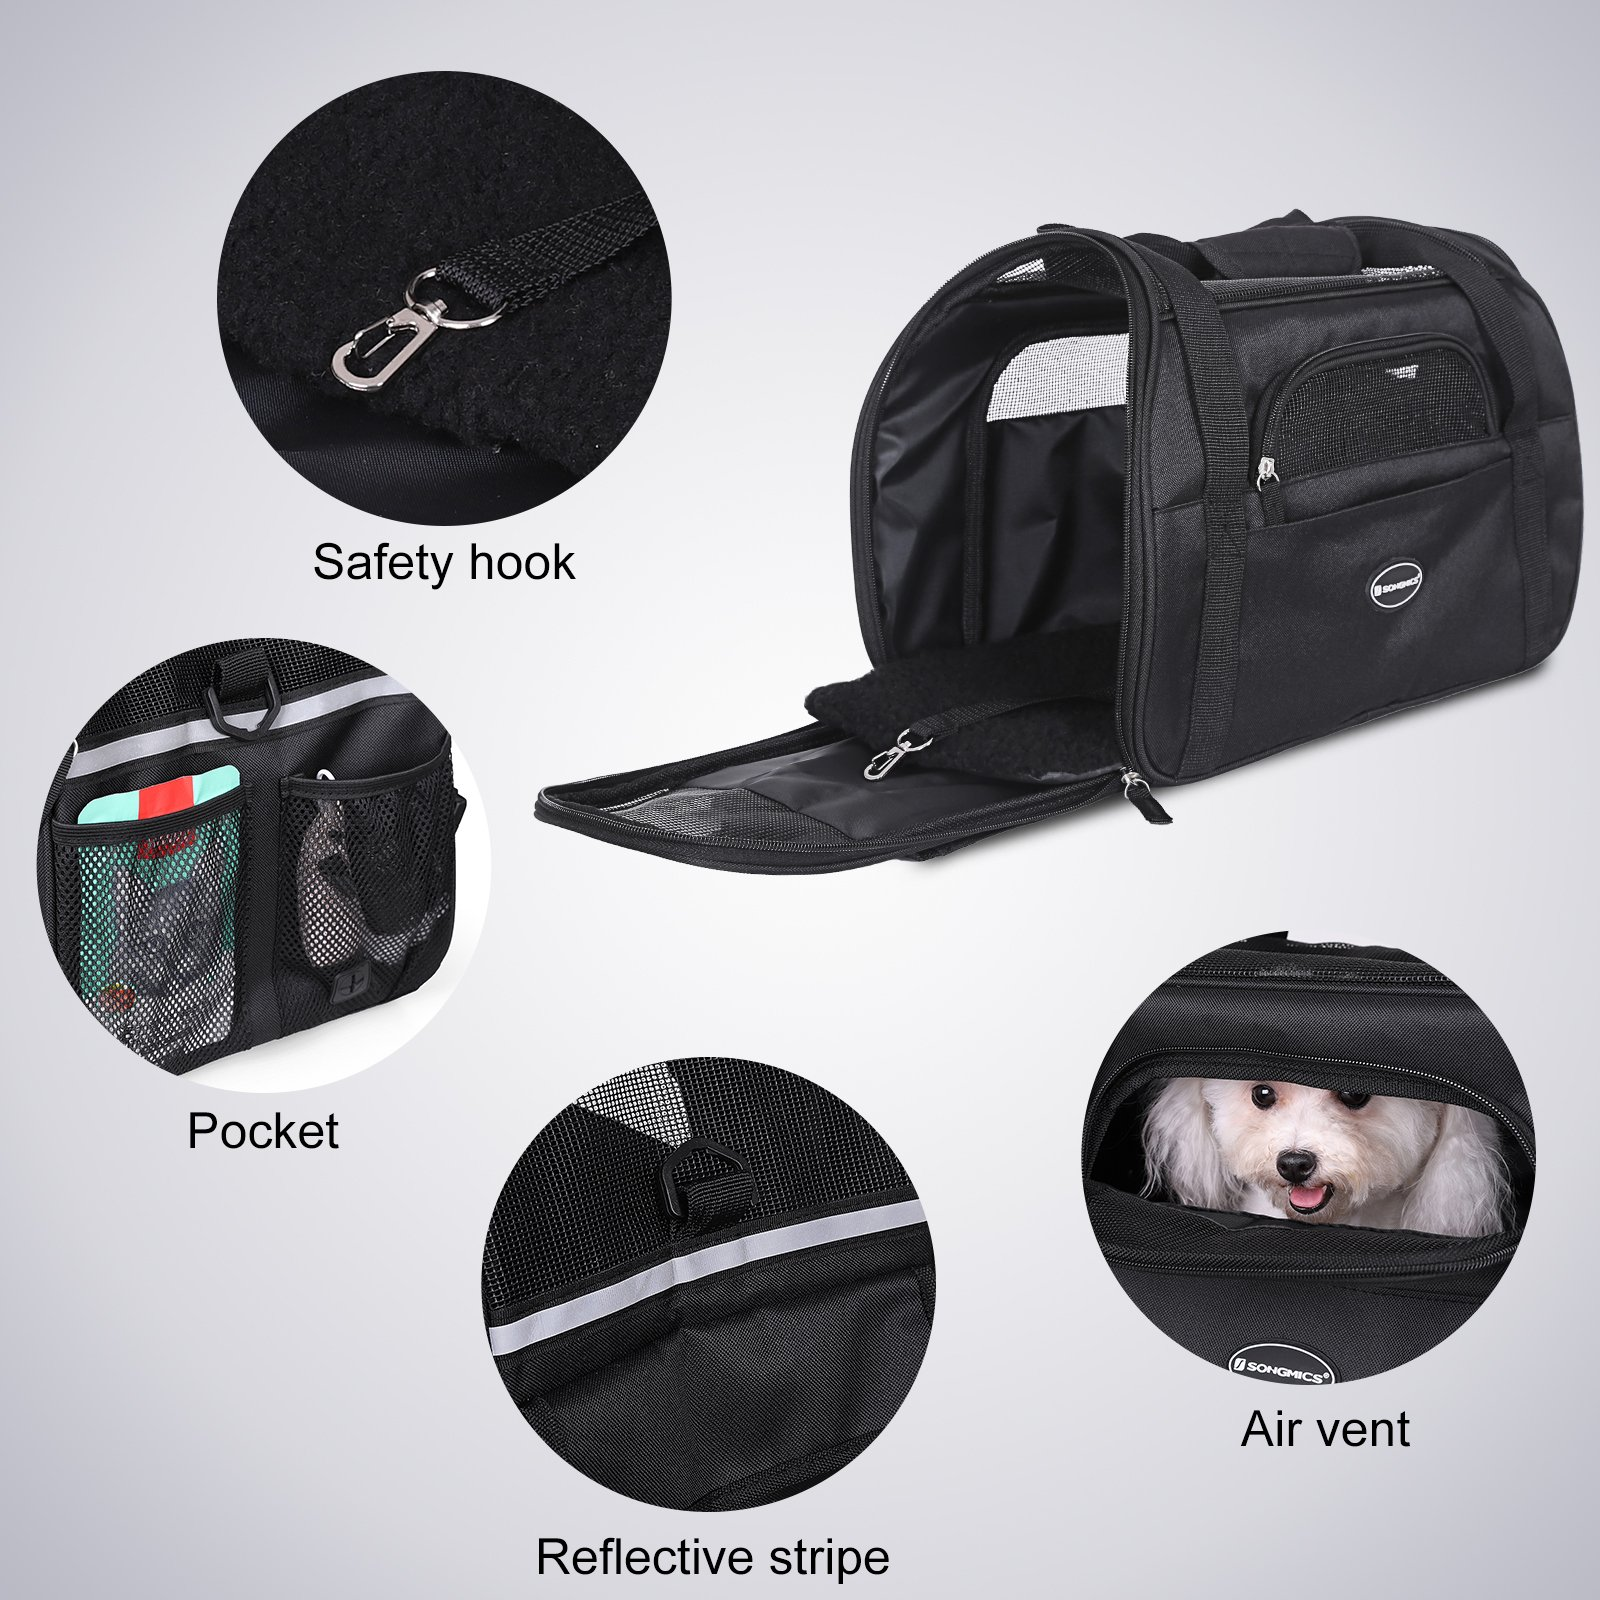 SONGMICS Foldable Pet Carrier, Soft-Sided, for Travel, Airline Approved, Small Dog/Cat Bags with Shoulder Strap, Garbage Bag Included UPDC42BK by SONGMICS (Image #5)